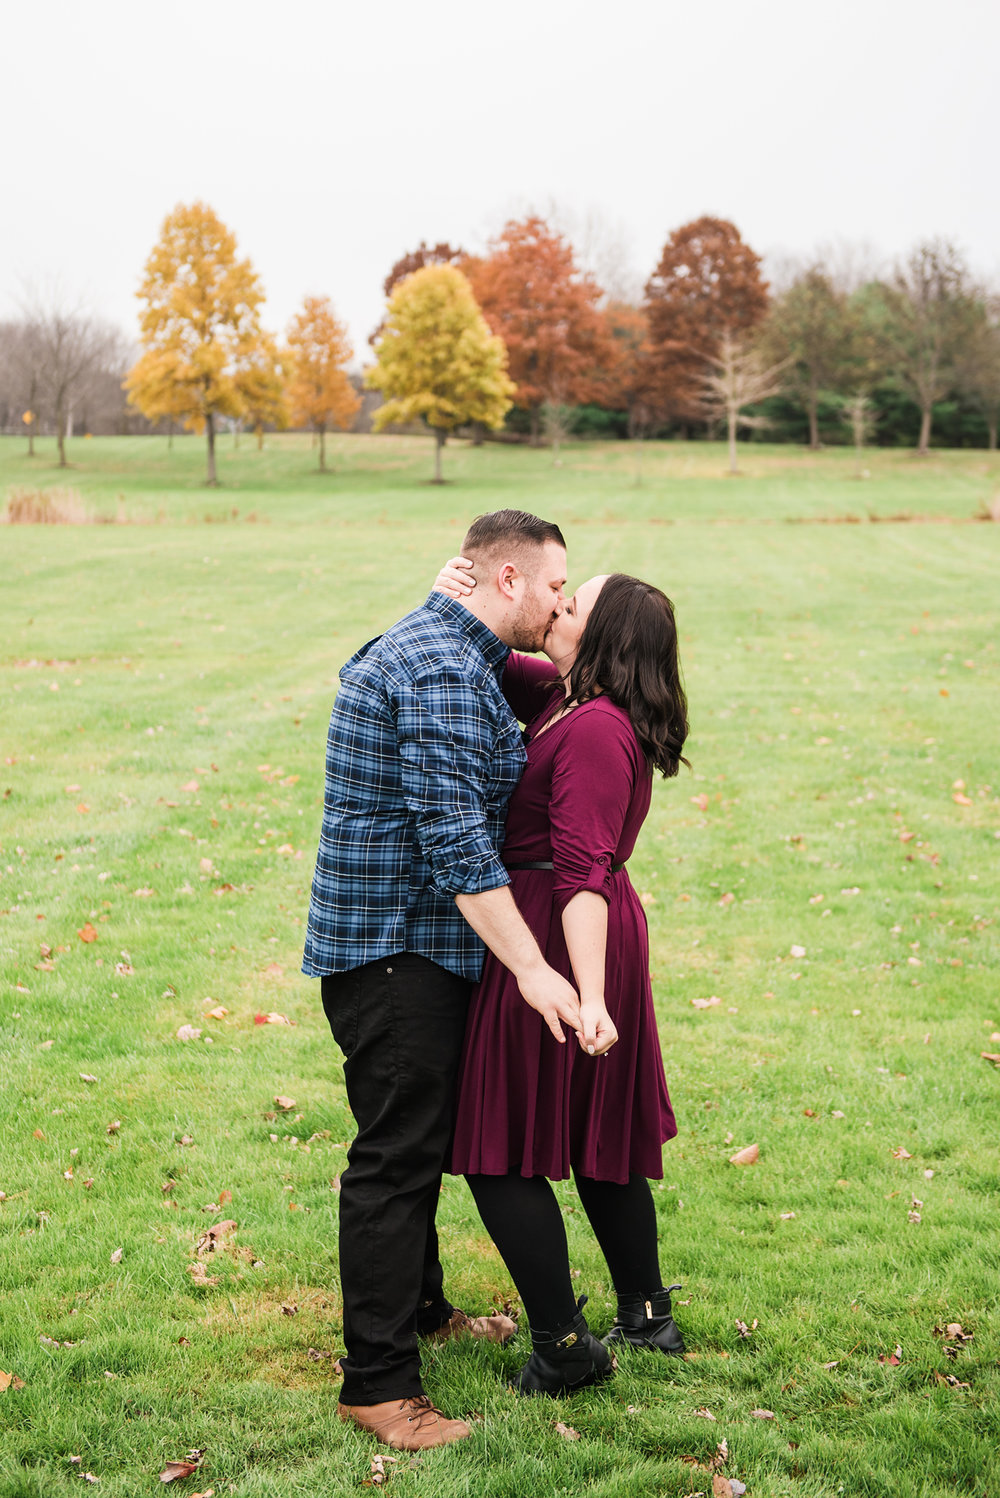 Tinker_Nature_Park_Rochester_Engagement_Session_JILL_STUDIO_Rochester_NY_Photographer_DSC_0607.jpg